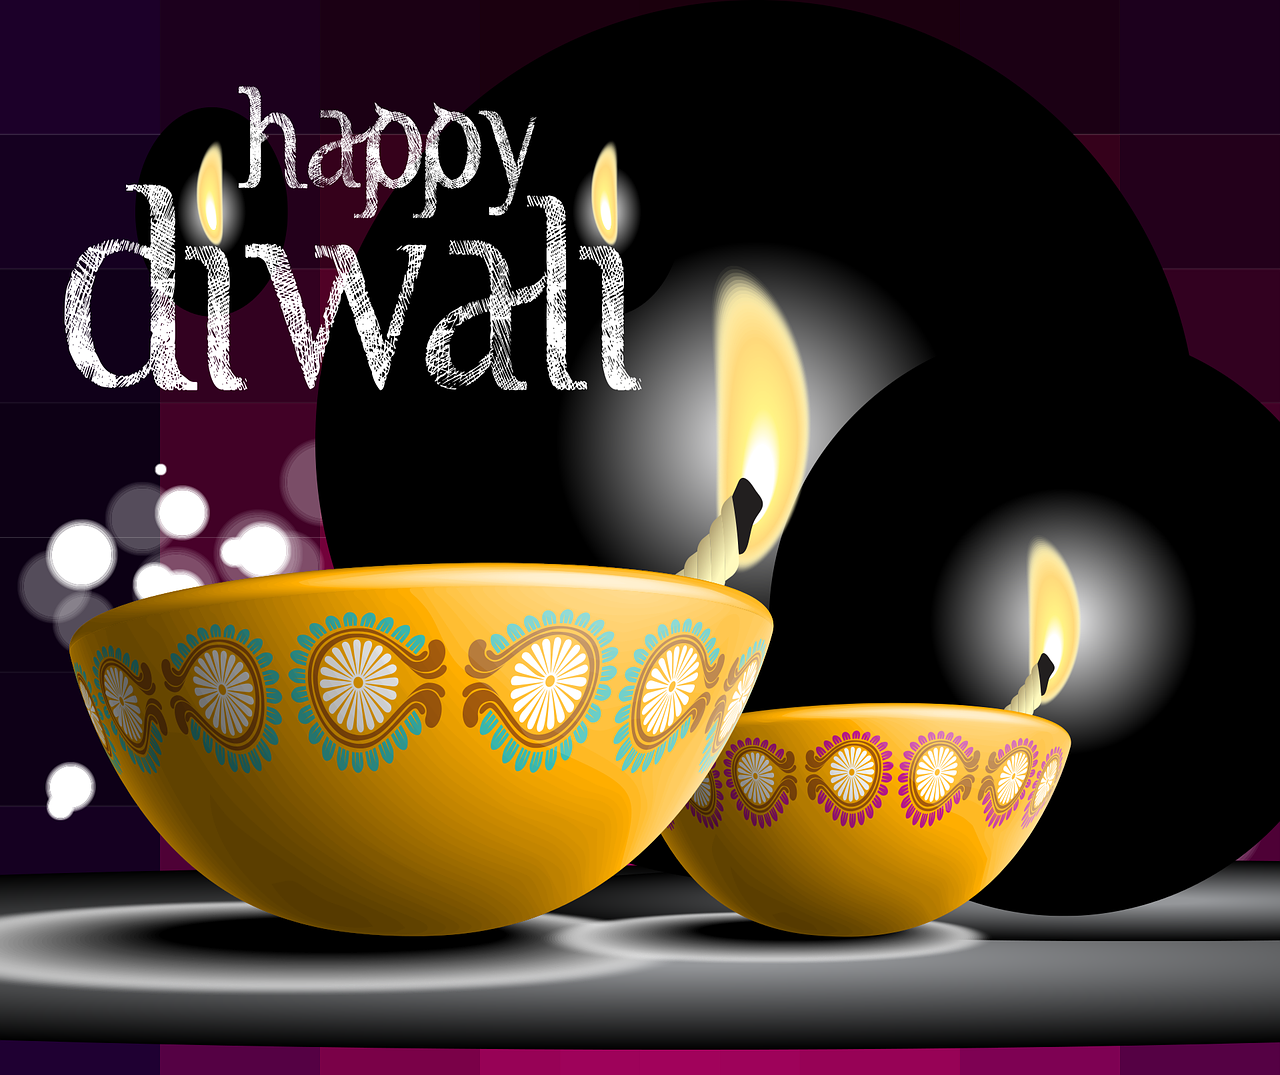 Diwali 2019 || Happy Diwali || Diwali Images|| Diwali Wishes || Diwali Photo Download